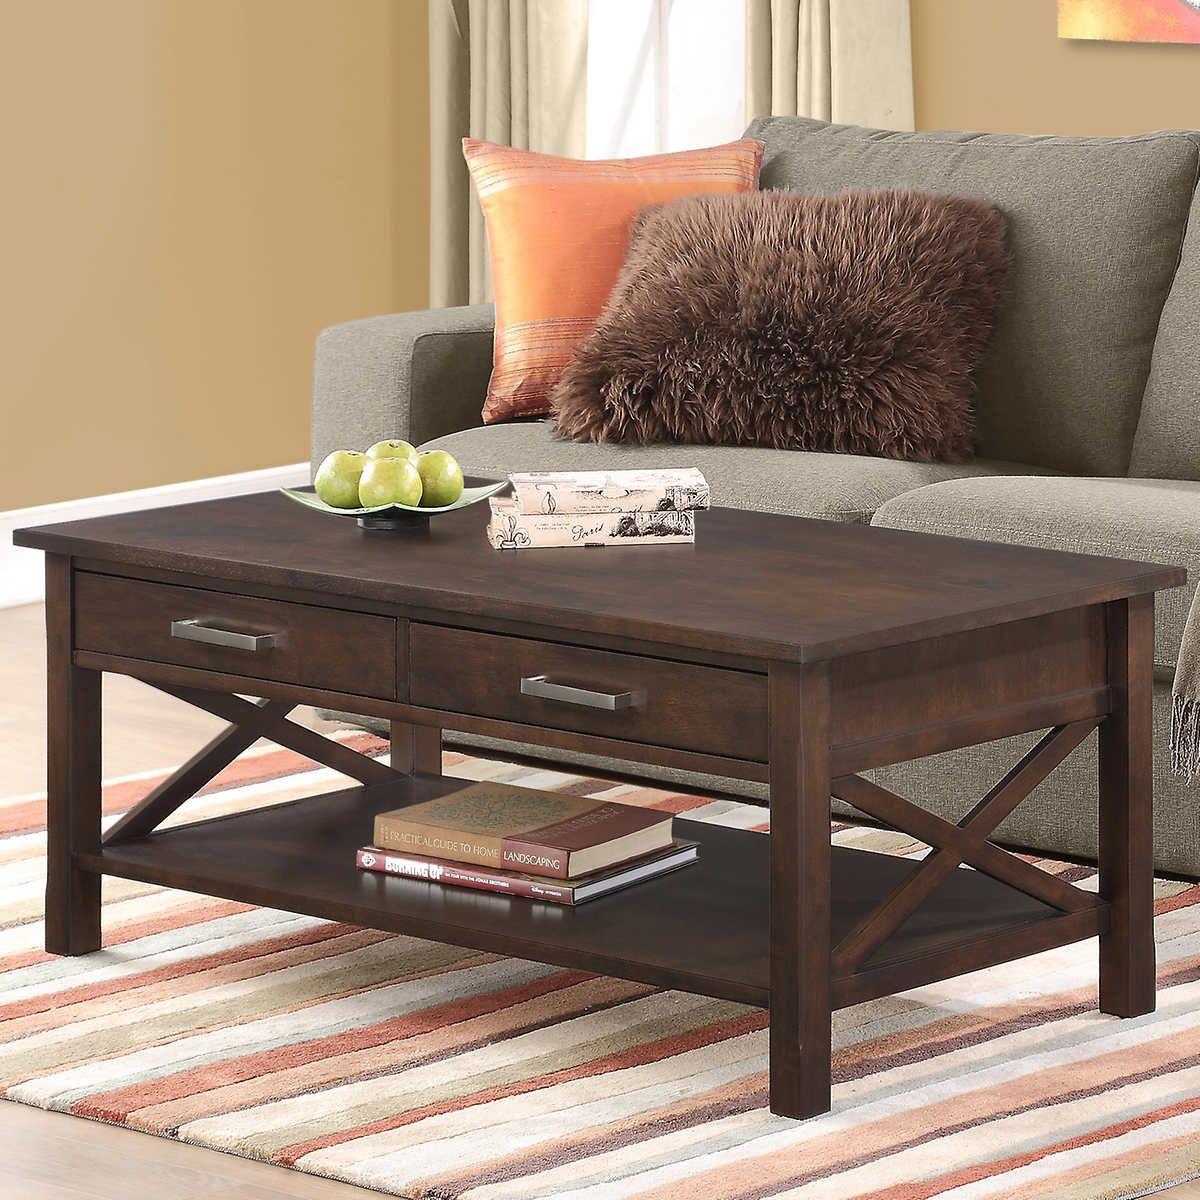 pin annora the sofa interior table living room sets coffee tables and end discover ideas about find great collection accent dark brown leather furniture thomasville reclining